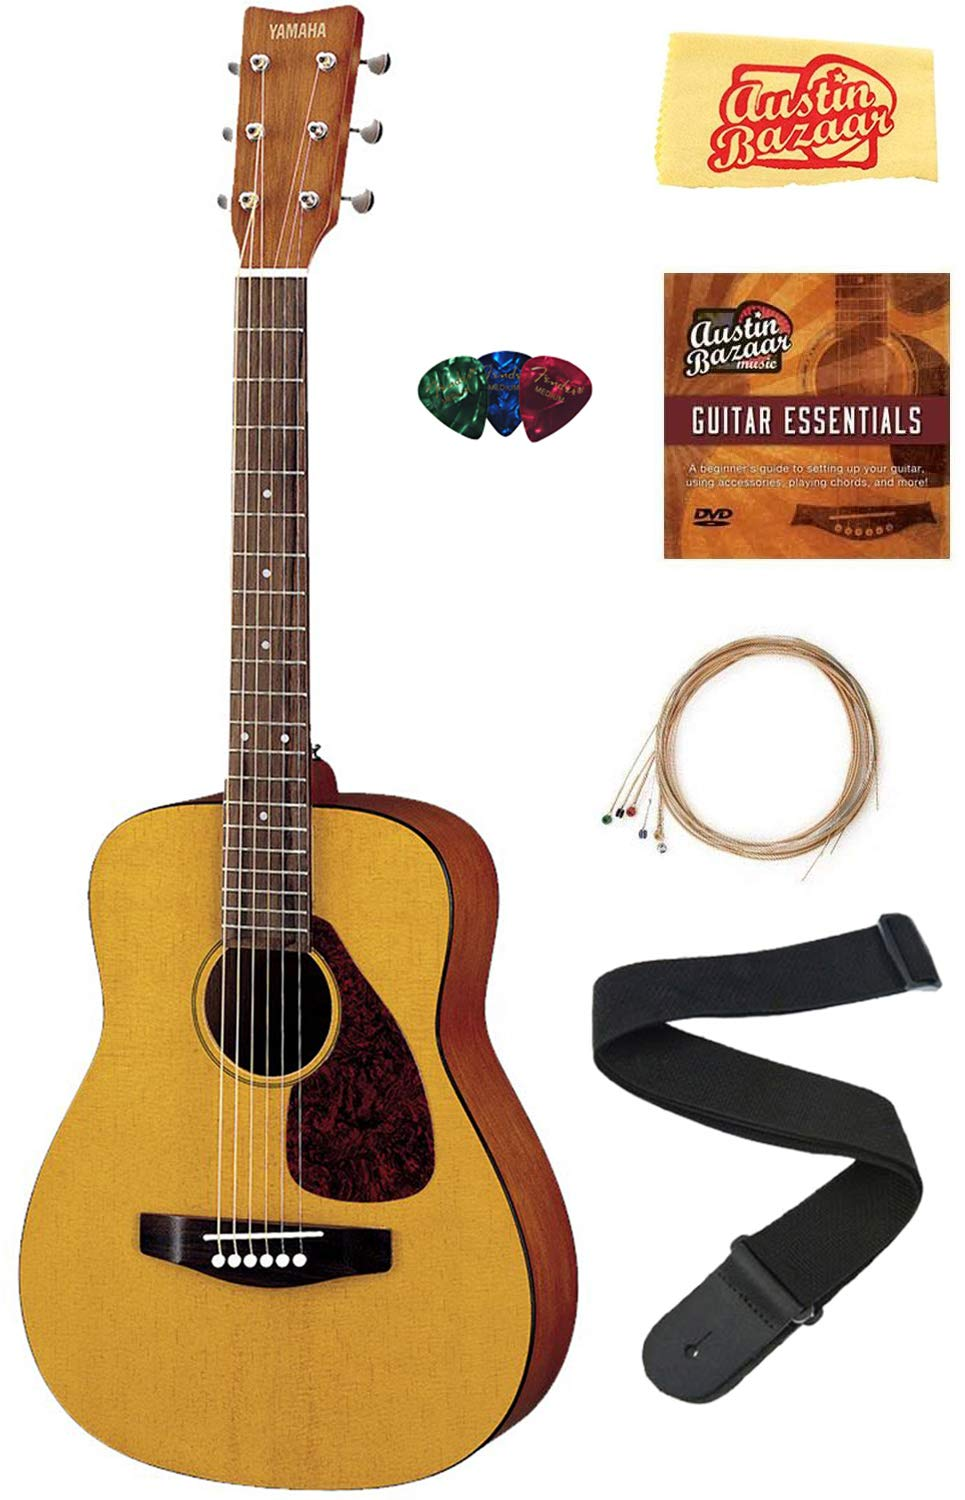 Yamaha JR1 1/2-Scale Mini Acoustic Guitar Bundle with Strings, Picks, Austin Bazaar Instructional DVD, and Polishing Cloth by YAMAHA